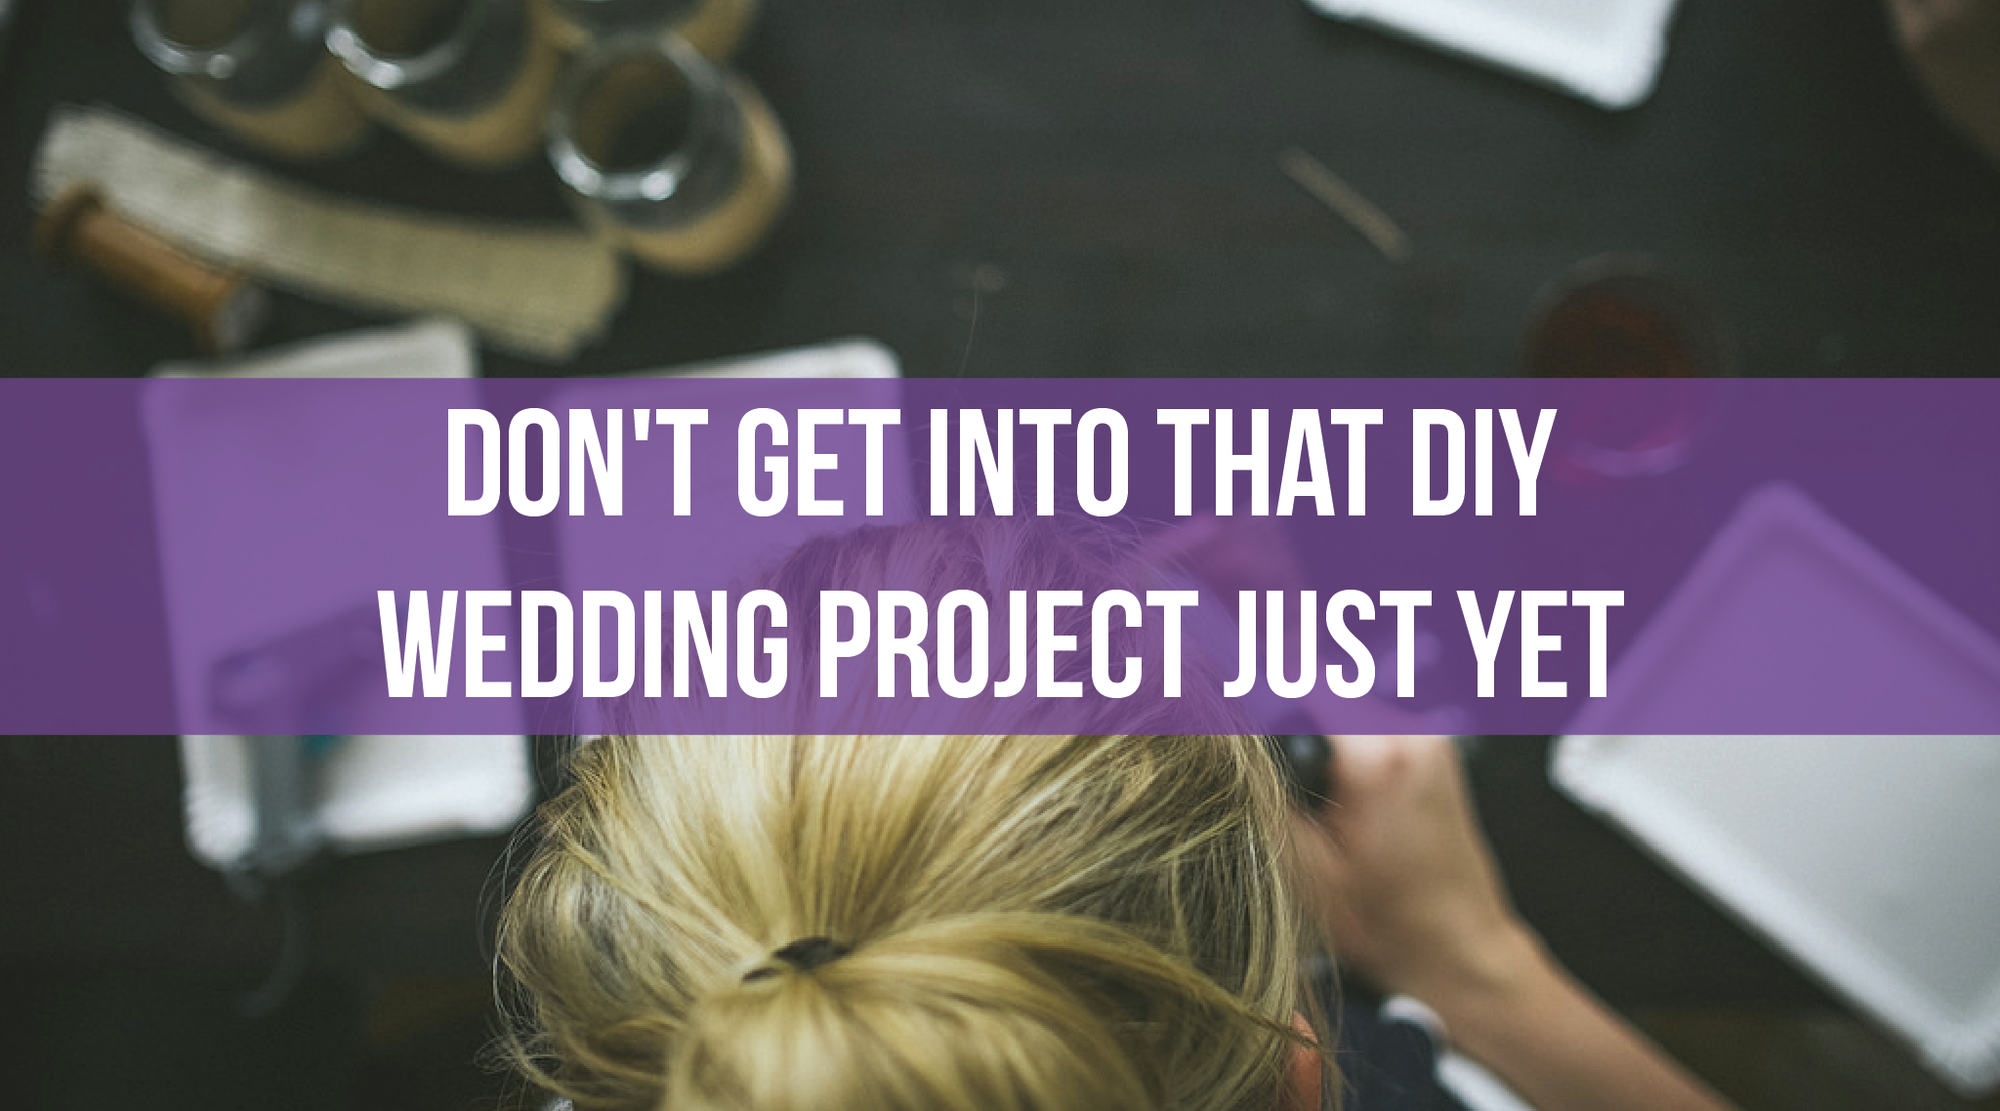 Don't Get Into That DIY Wedding Project Just Yet